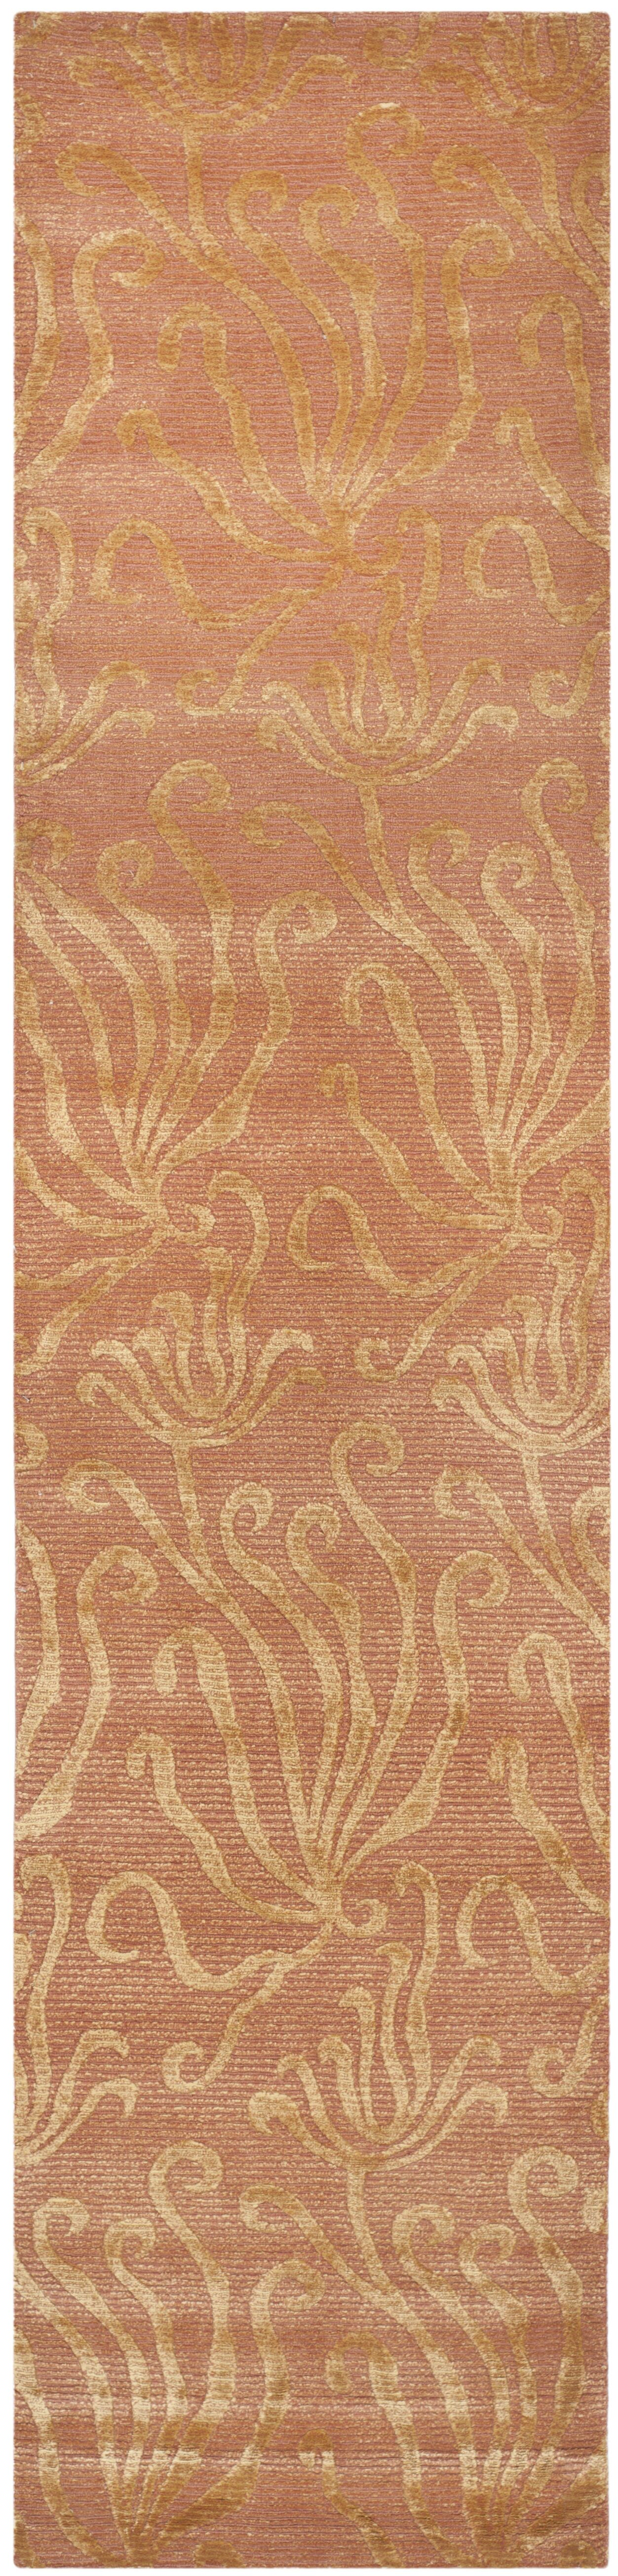 Seaflora Hand-Tufted Brown/Gold Area Rug Rug Size: Runner 2'3